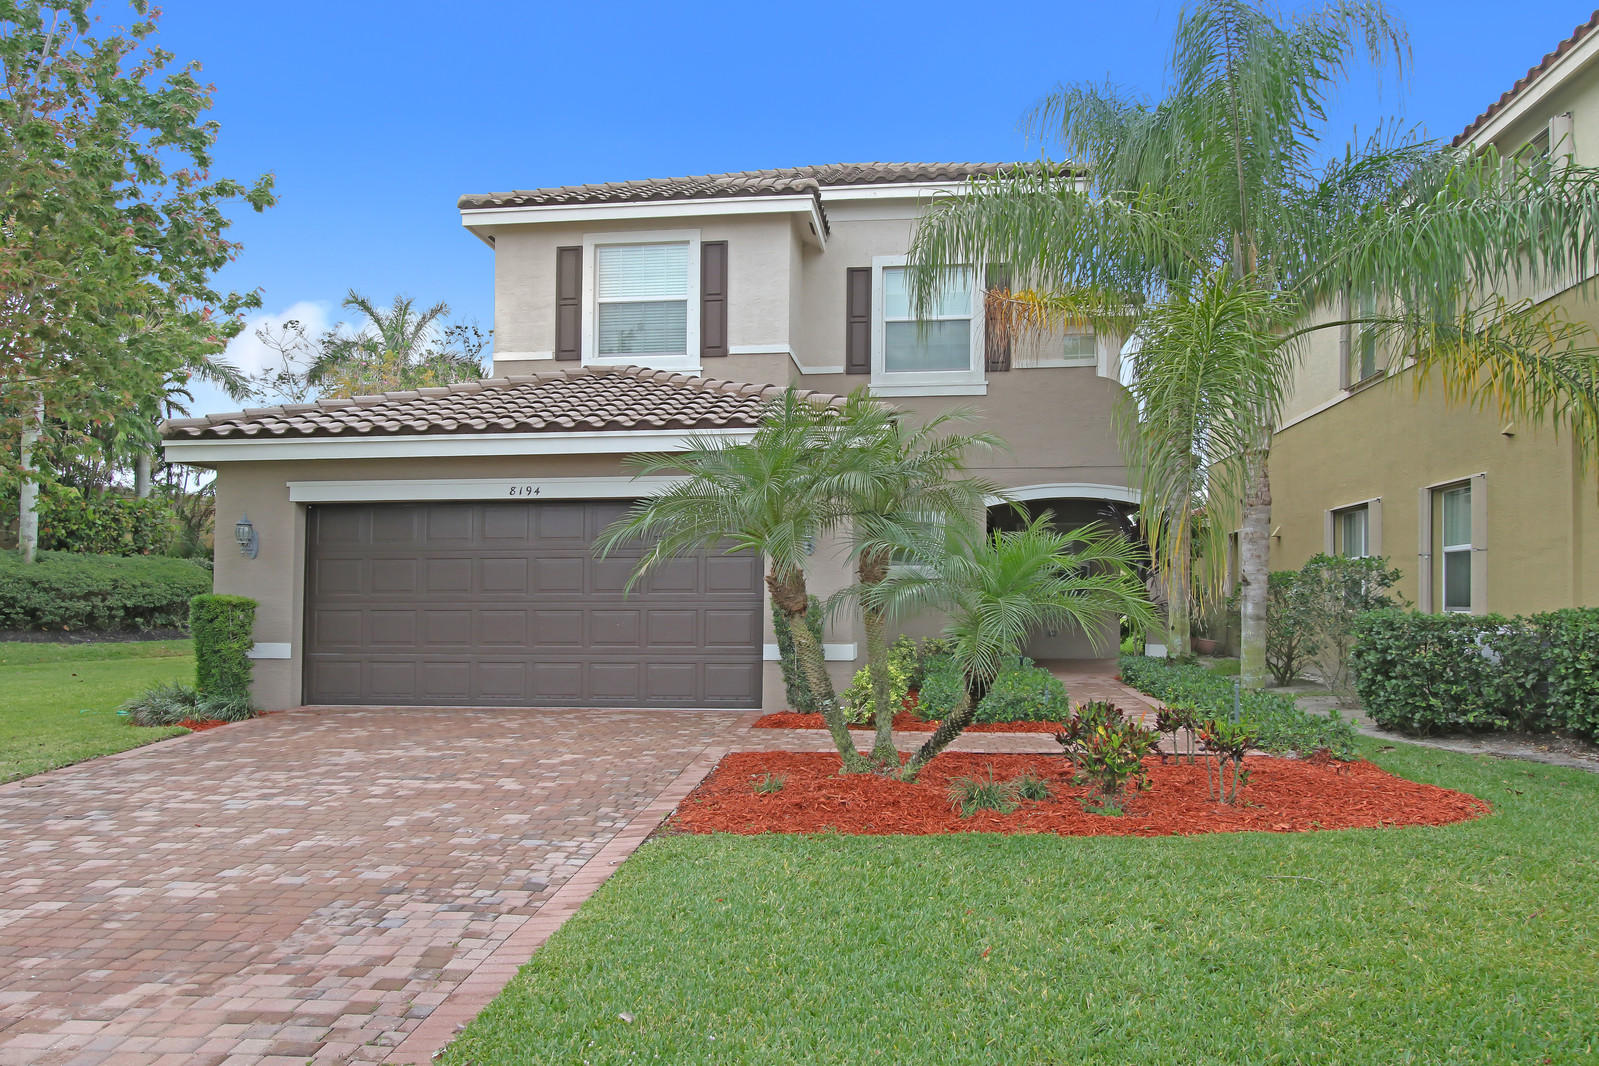 8194  Adrina Shores Way, Boynton Beach in Palm Beach County, FL 33473 Home for Sale